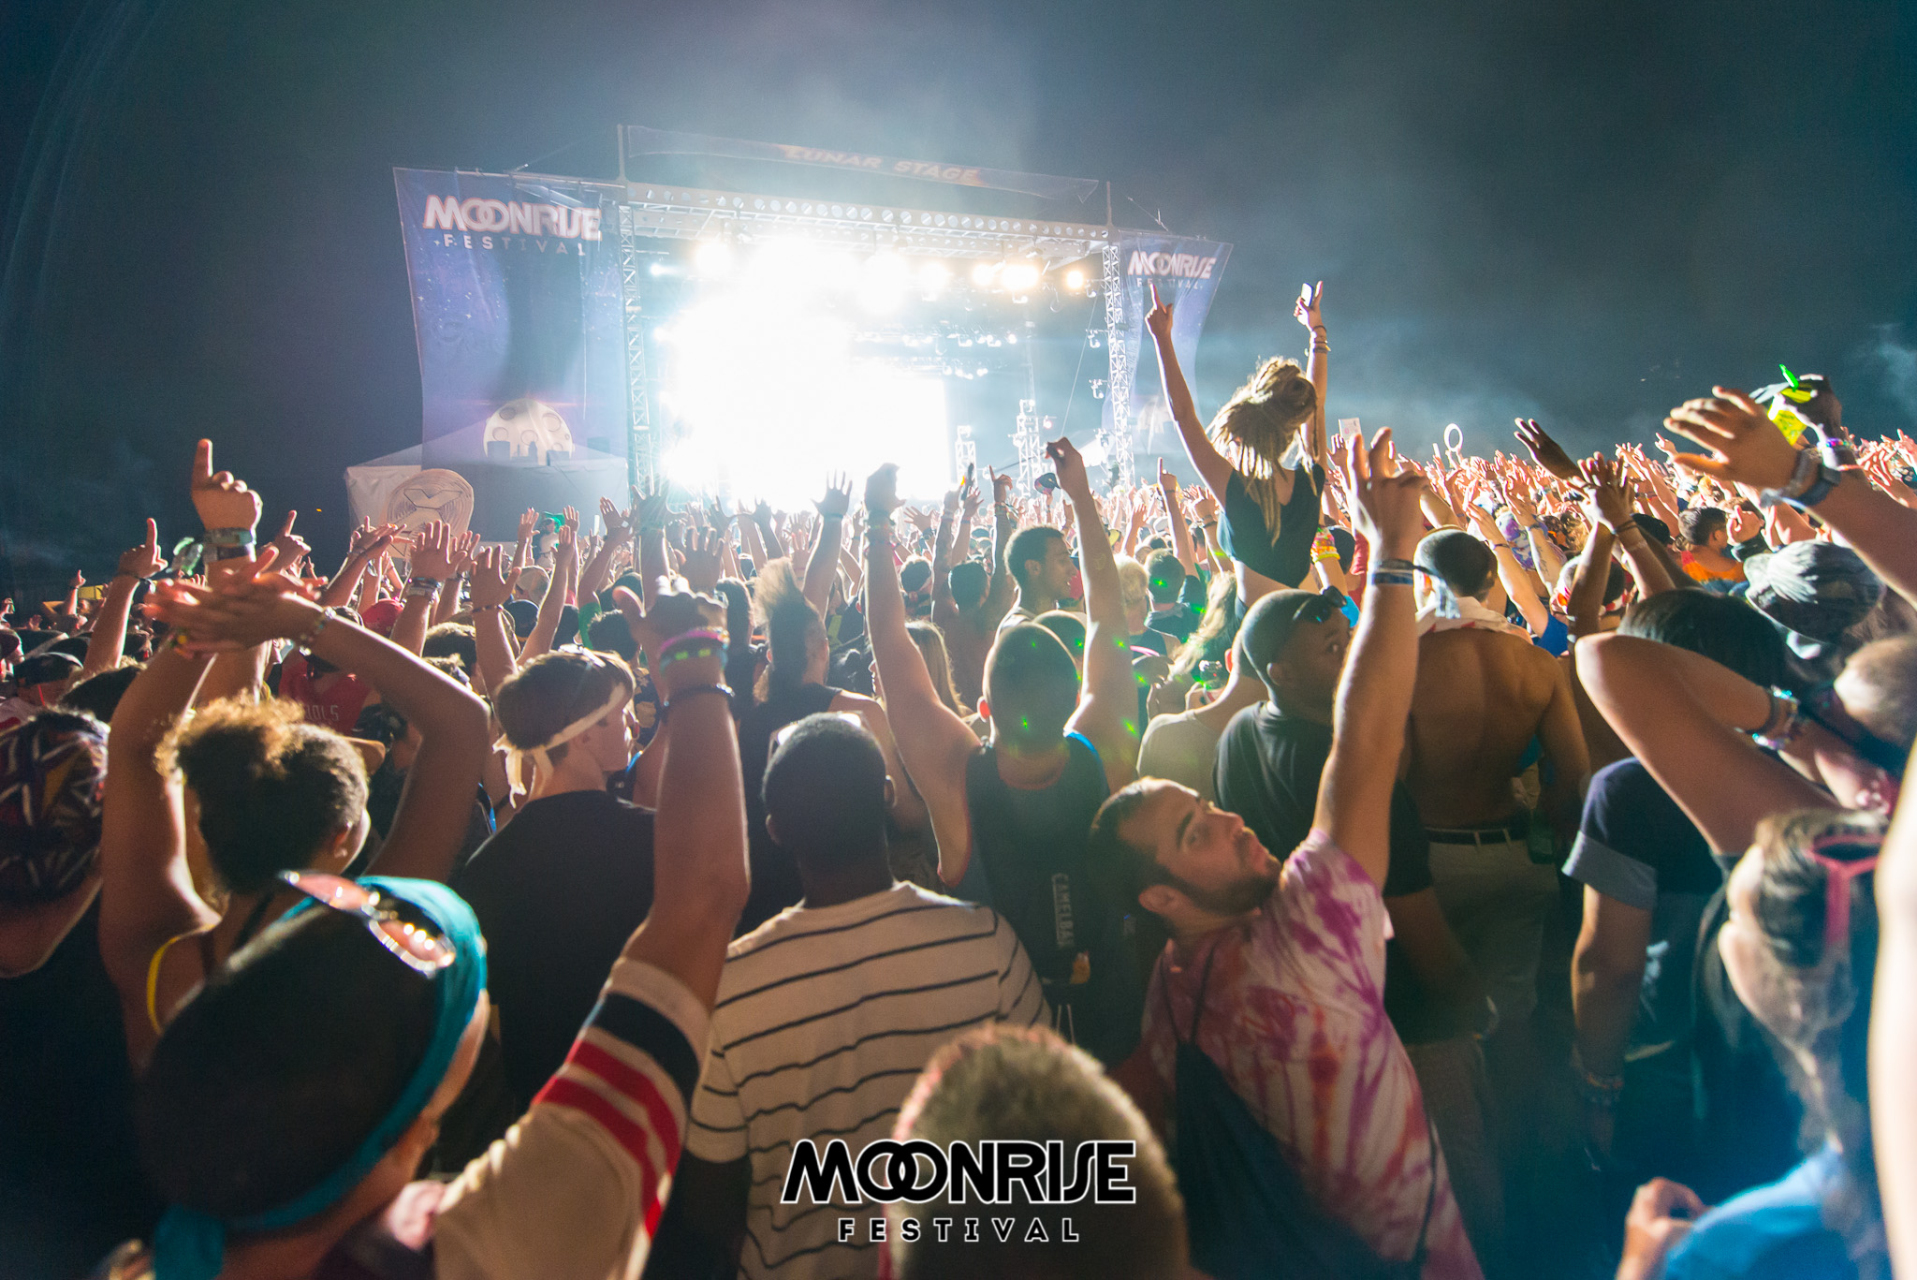 Moonrise_day2-121